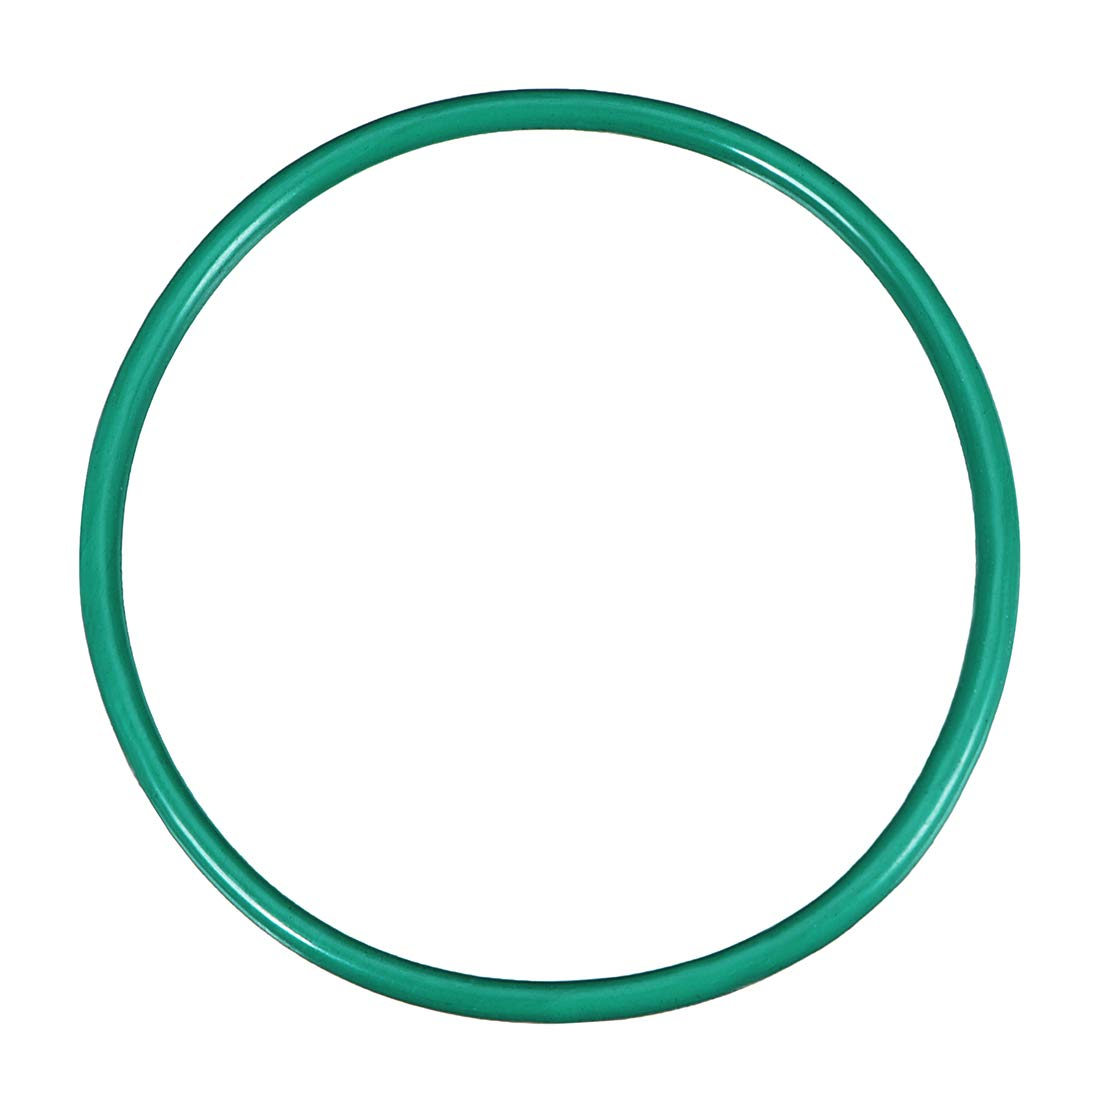 10mm OD 2mm Width uxcell O-Rings Fluorine Rubber Round Seal Gasket Pack of 3 6mm Inner Diameter